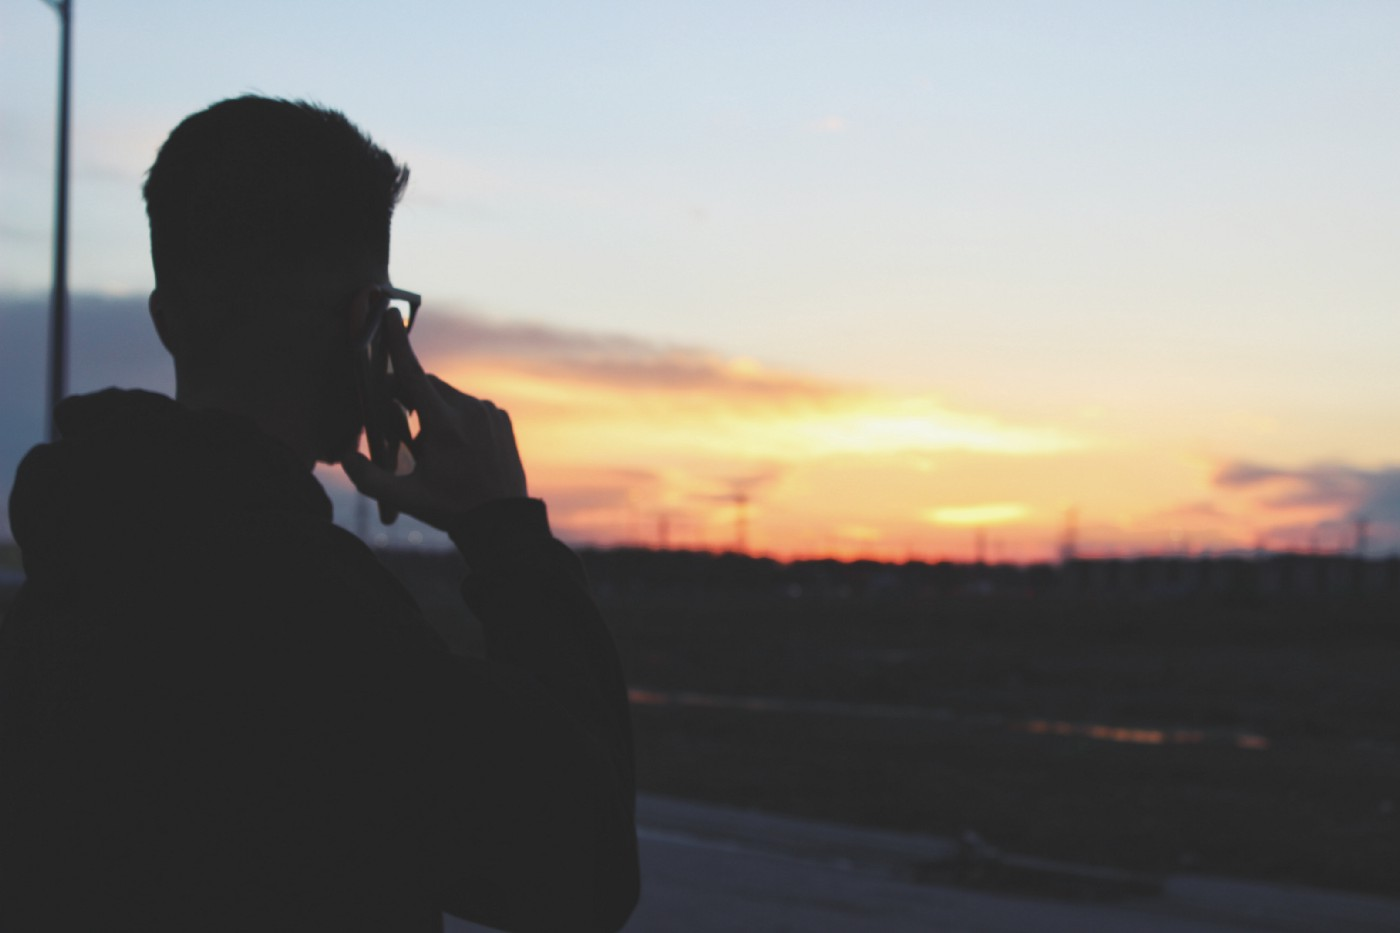 Regret:Talk to a friend in your community